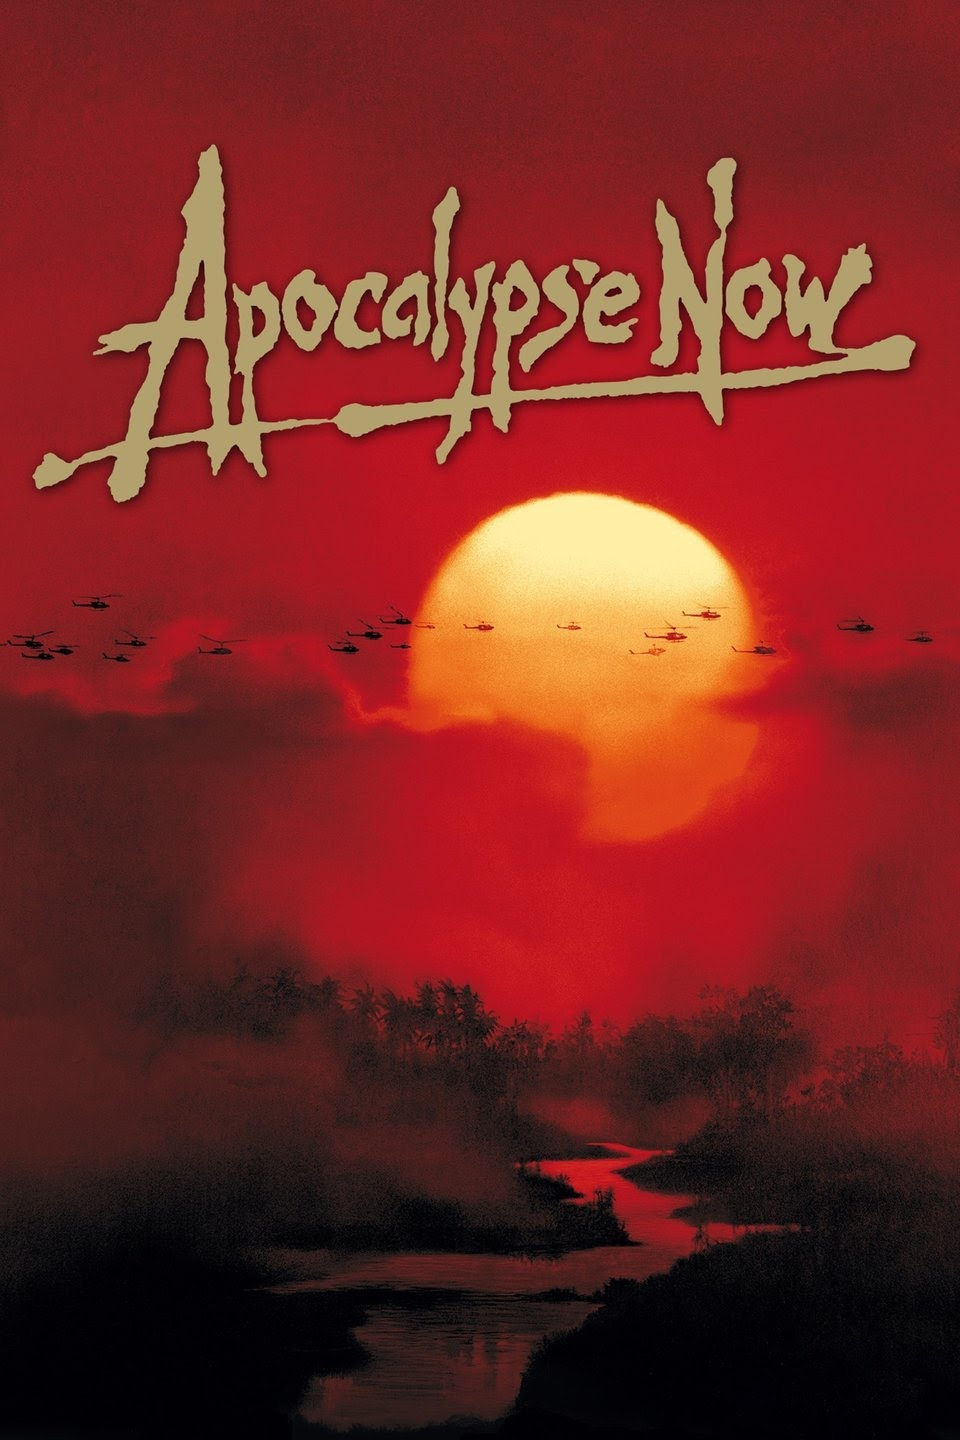 Apocalypse Now - AP Lit Skill Spotlight: Imagery, AP Lit & More